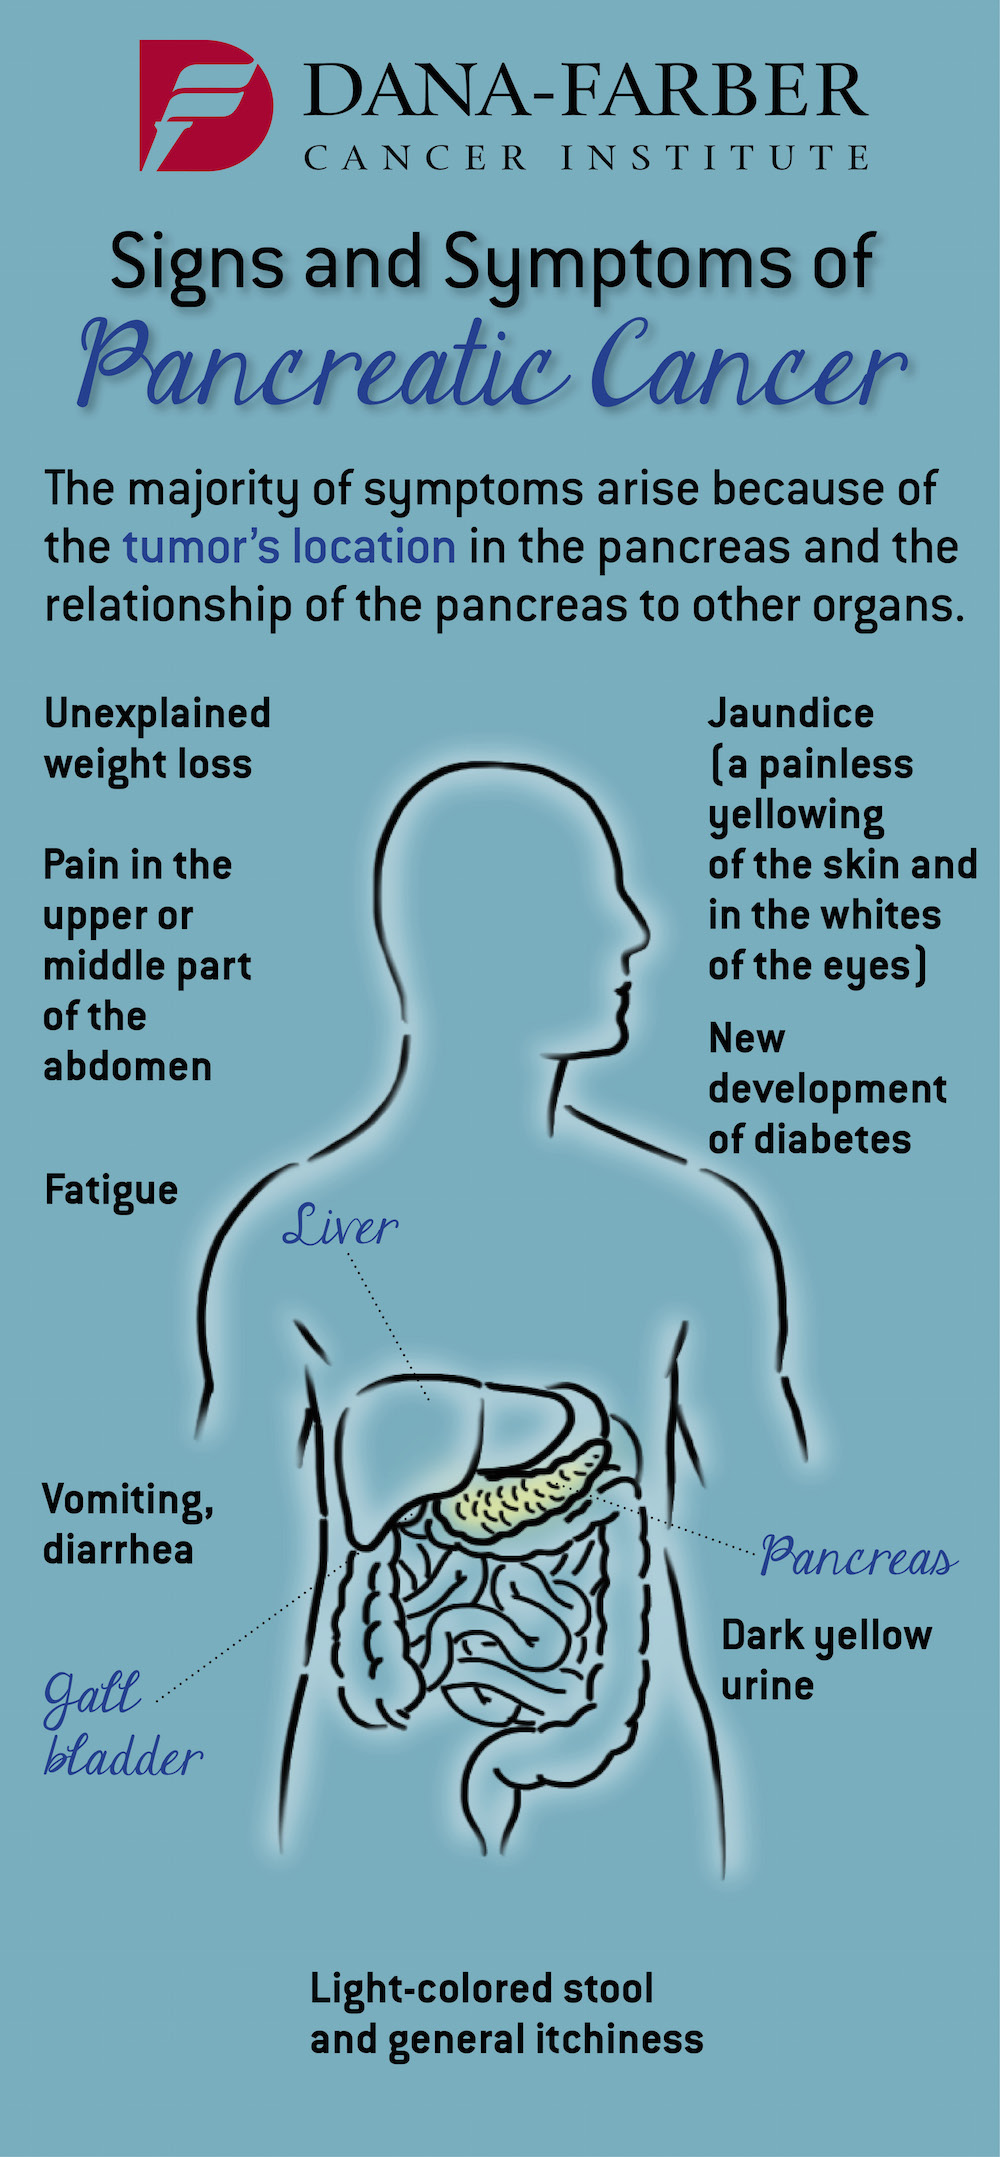 Pancreatic Cancer What Are The Signs And Symptoms Dana Farber